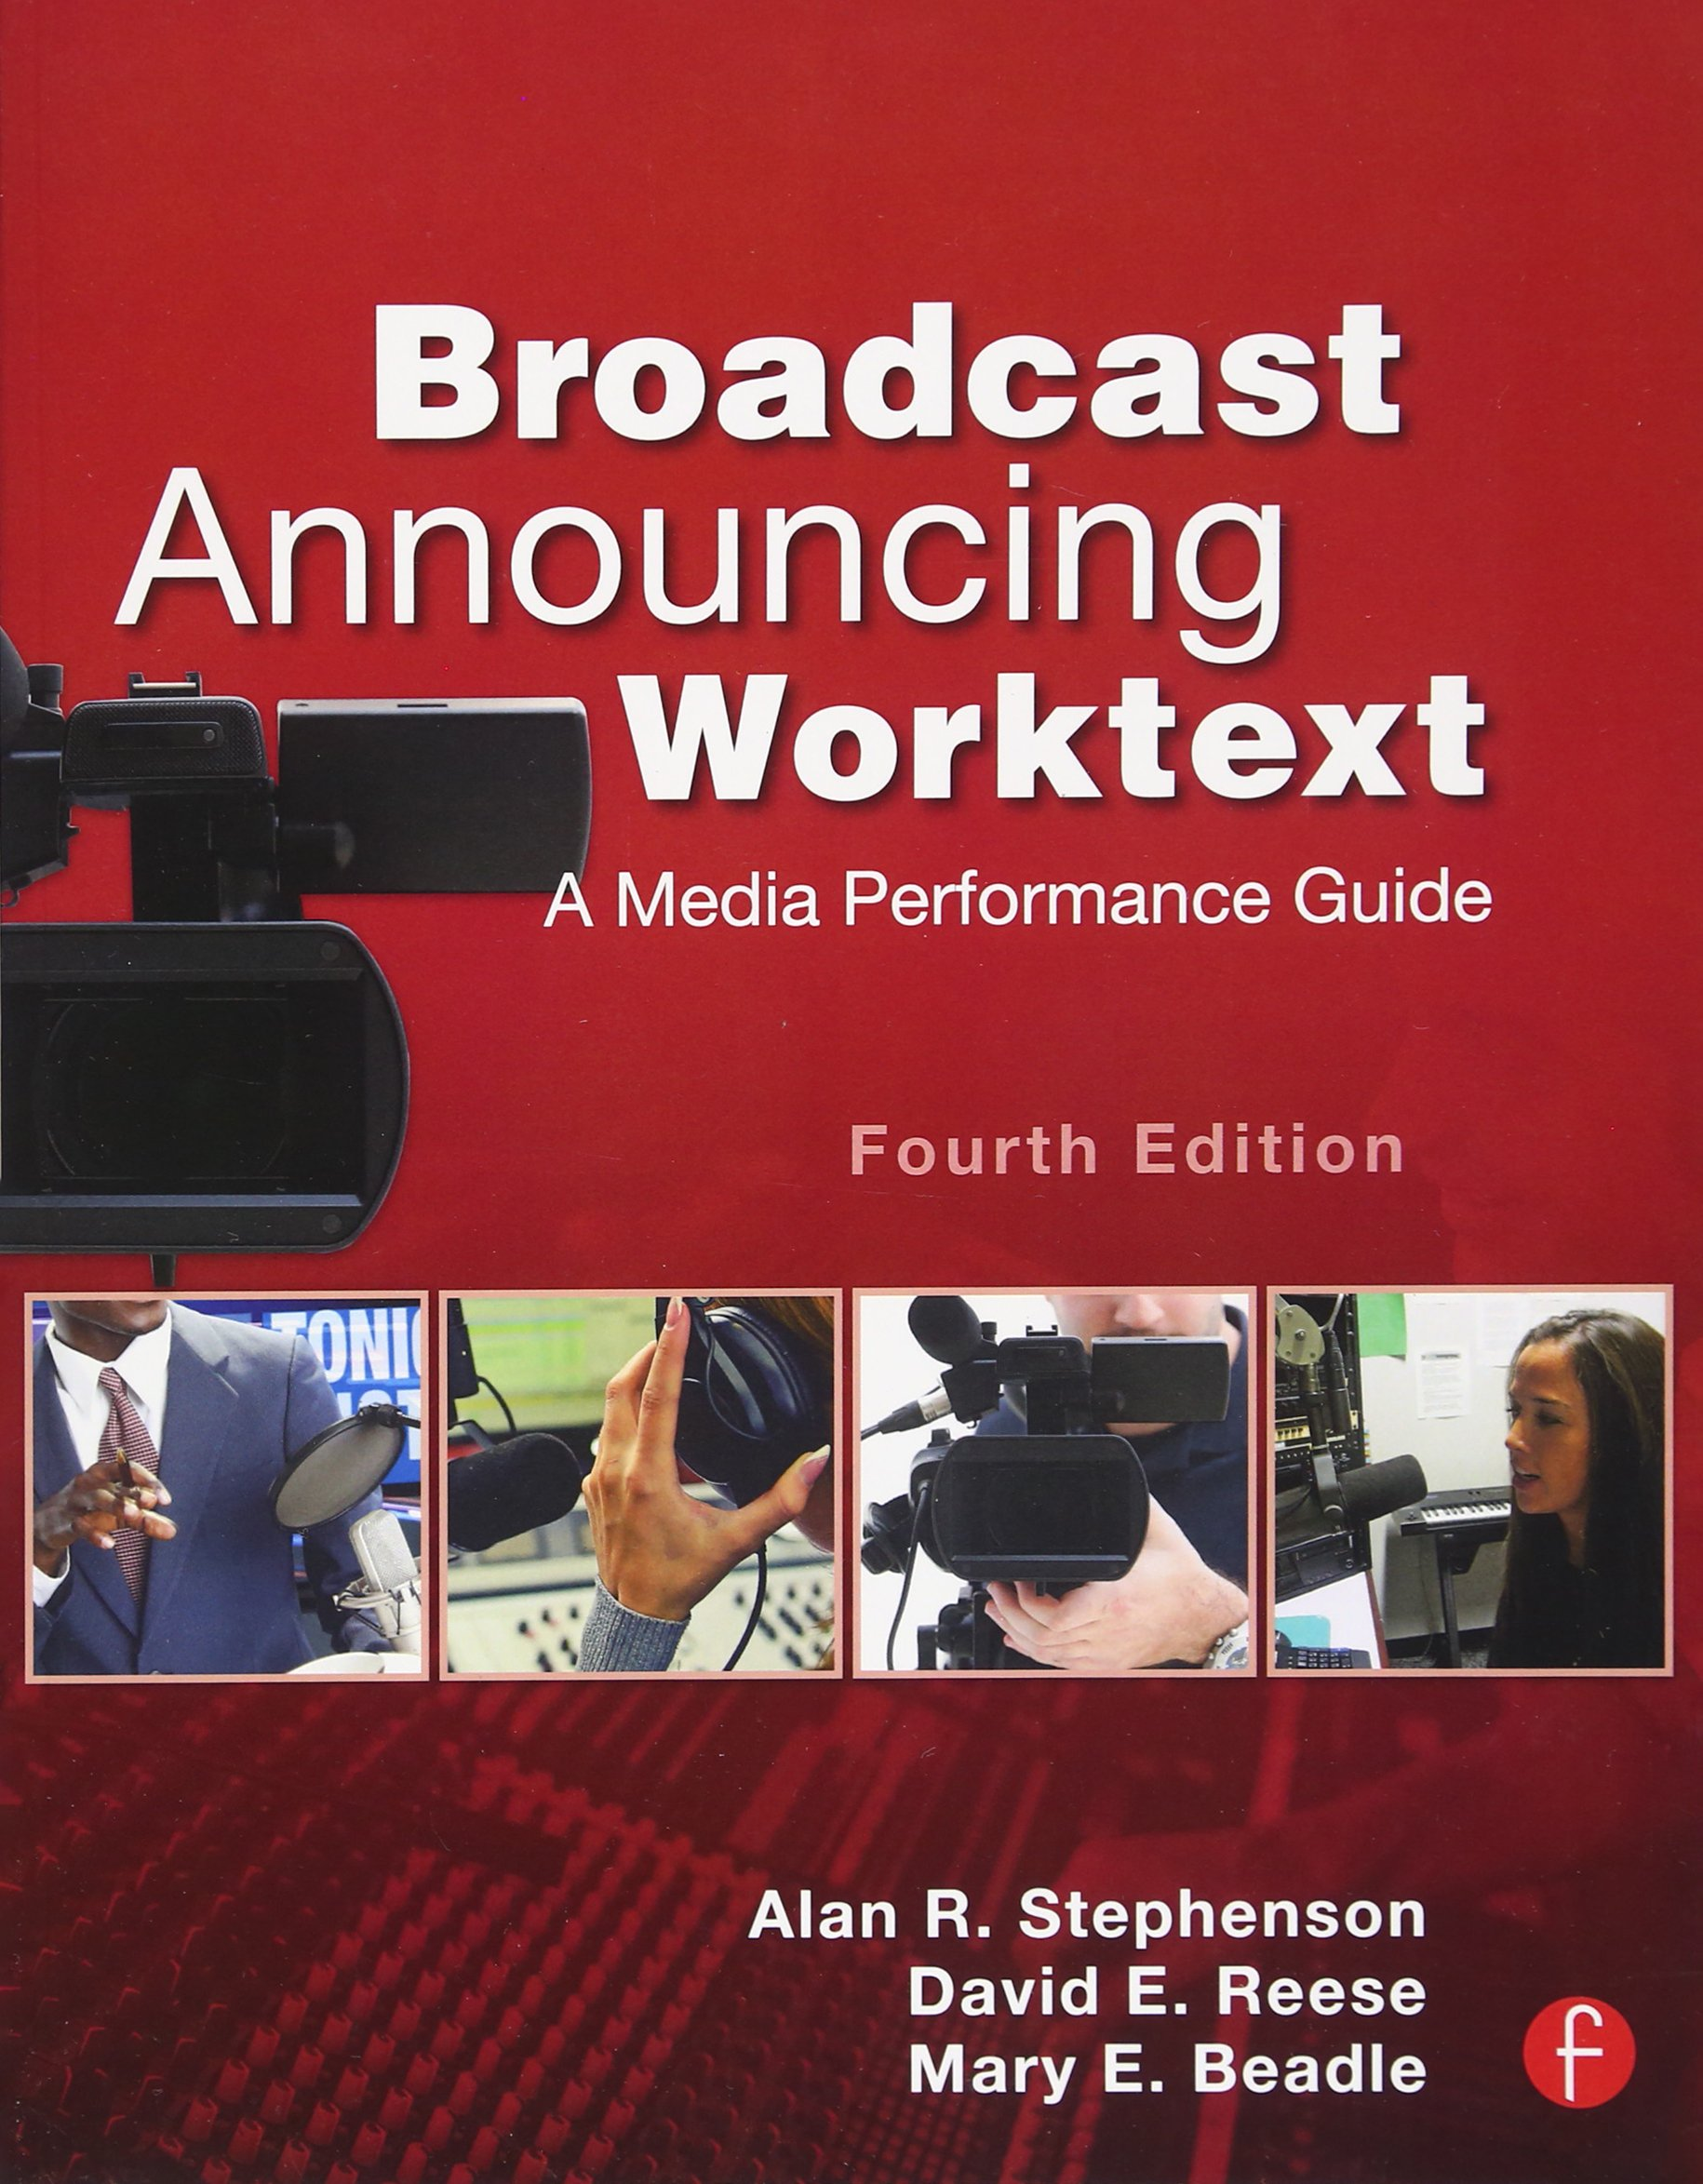 Broadcast Announcing Worktext, Fourth Edition: A Media Performance Guide by Brand: Focal Press